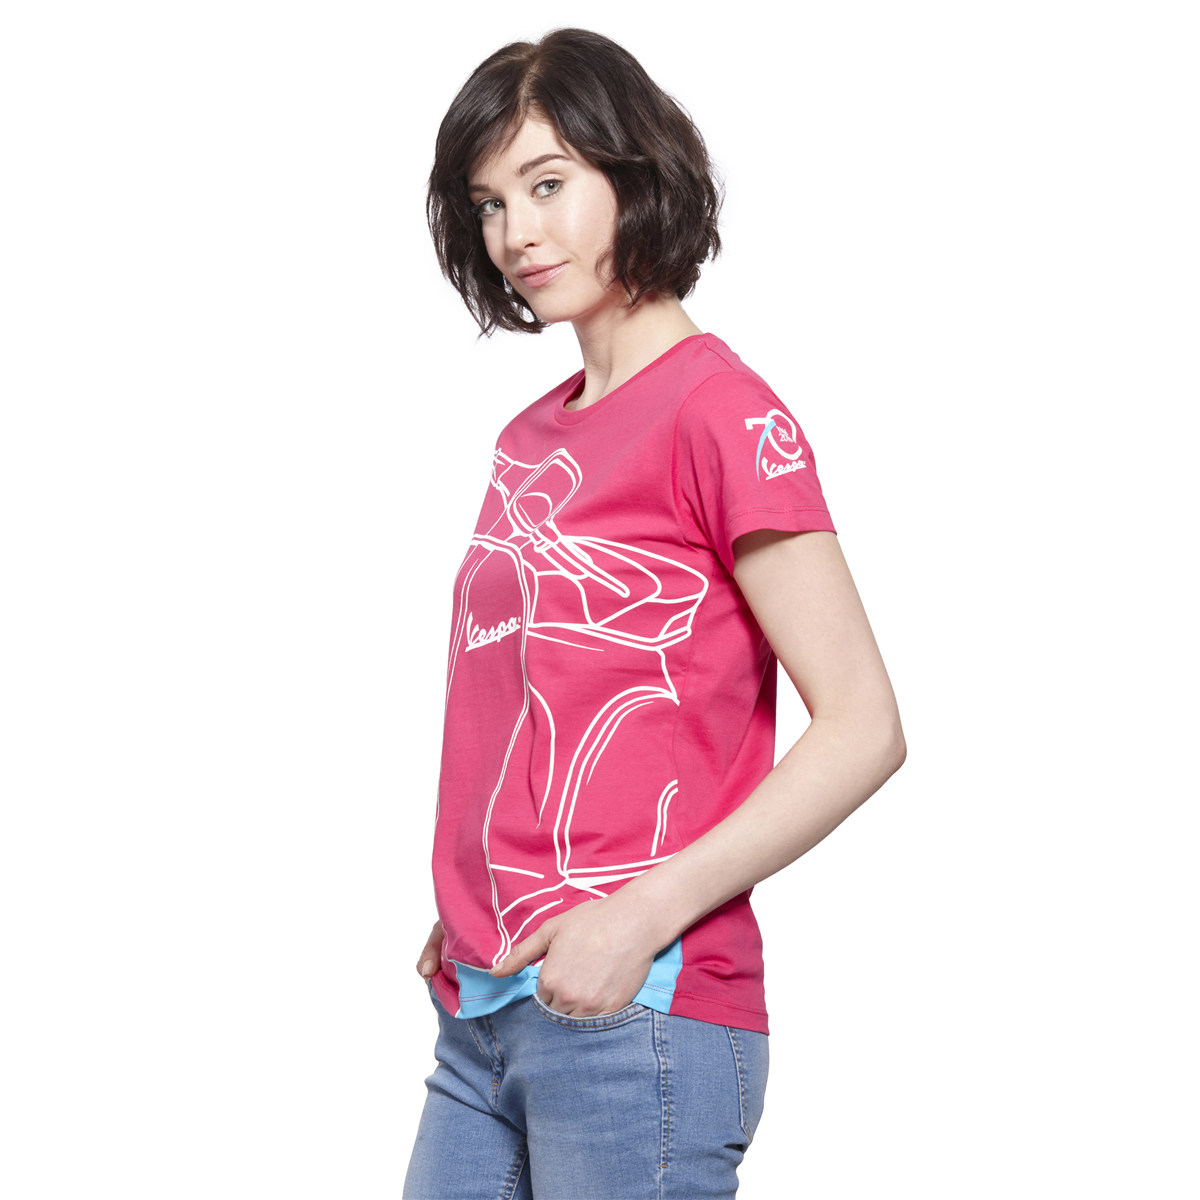 VESPA YOUNG WOMAN T-SHIRT